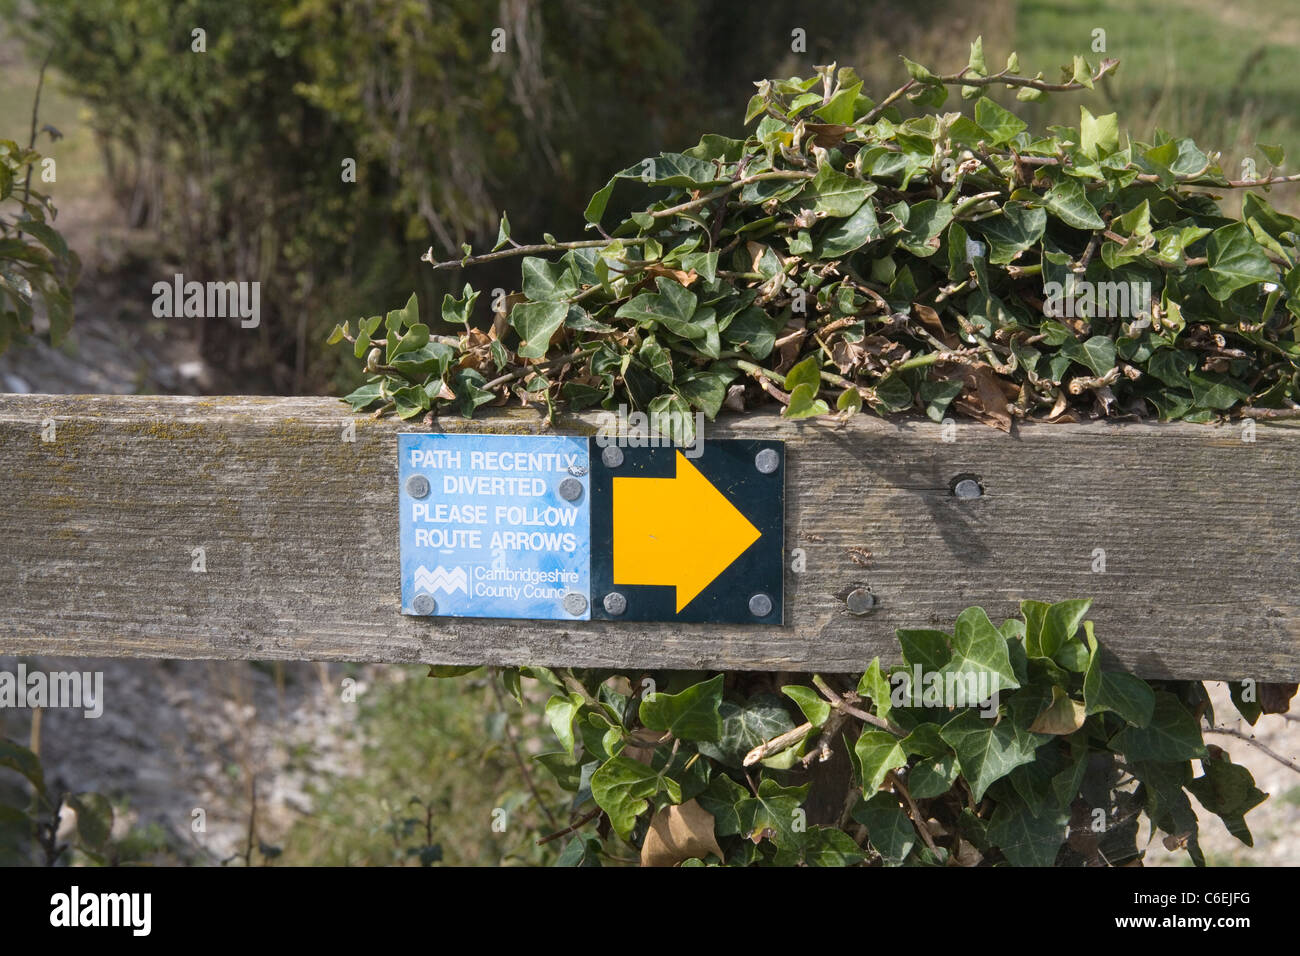 a diverted public footpath in cambridgeshire - Stock Image